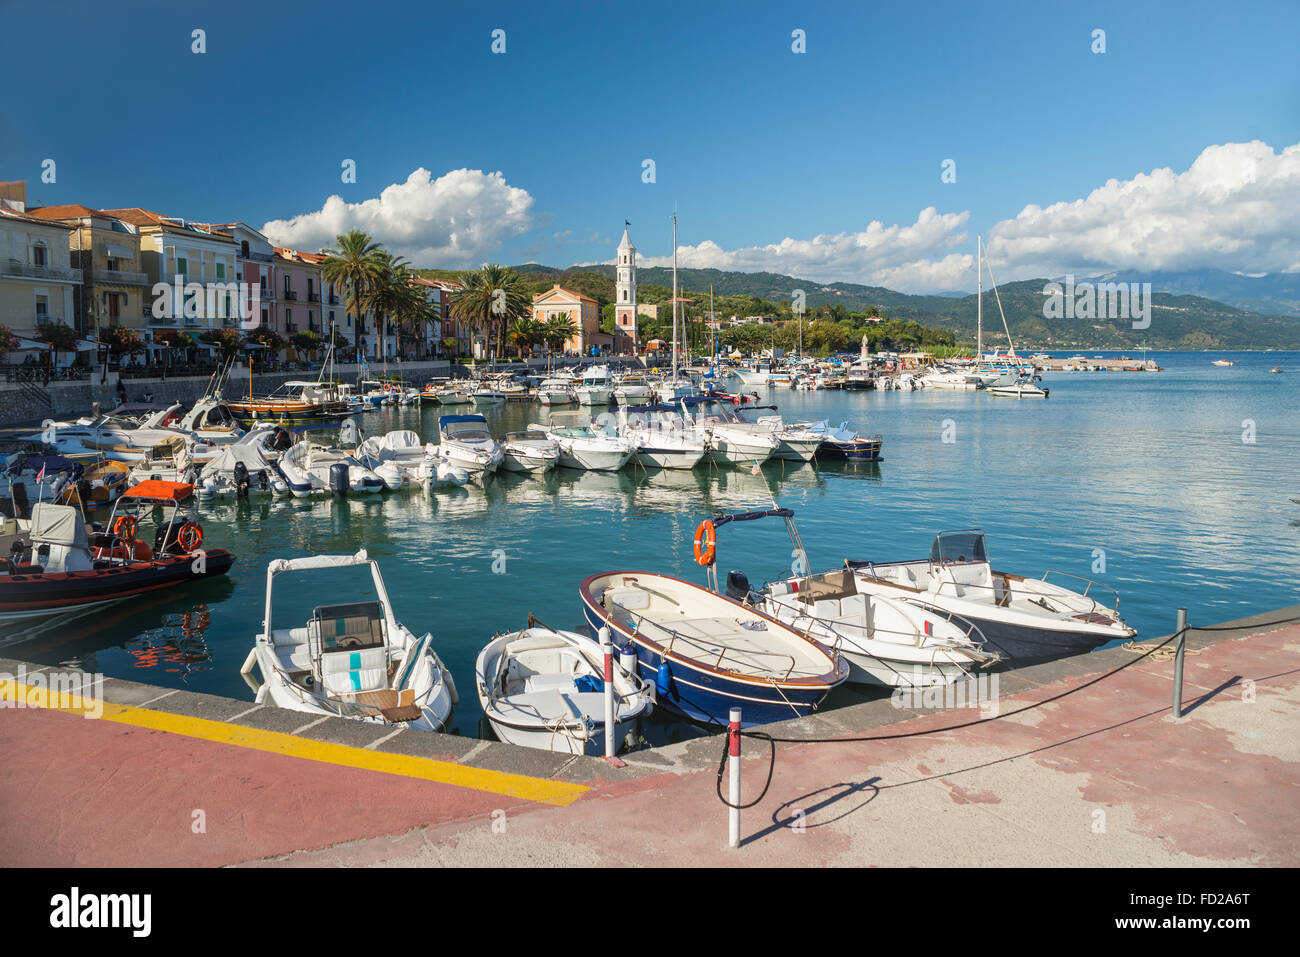 Motor boats and yachts in the harbor of Scario on a sunny summer day in the mediterranean sea, Cilento, Campania, - Stock Image